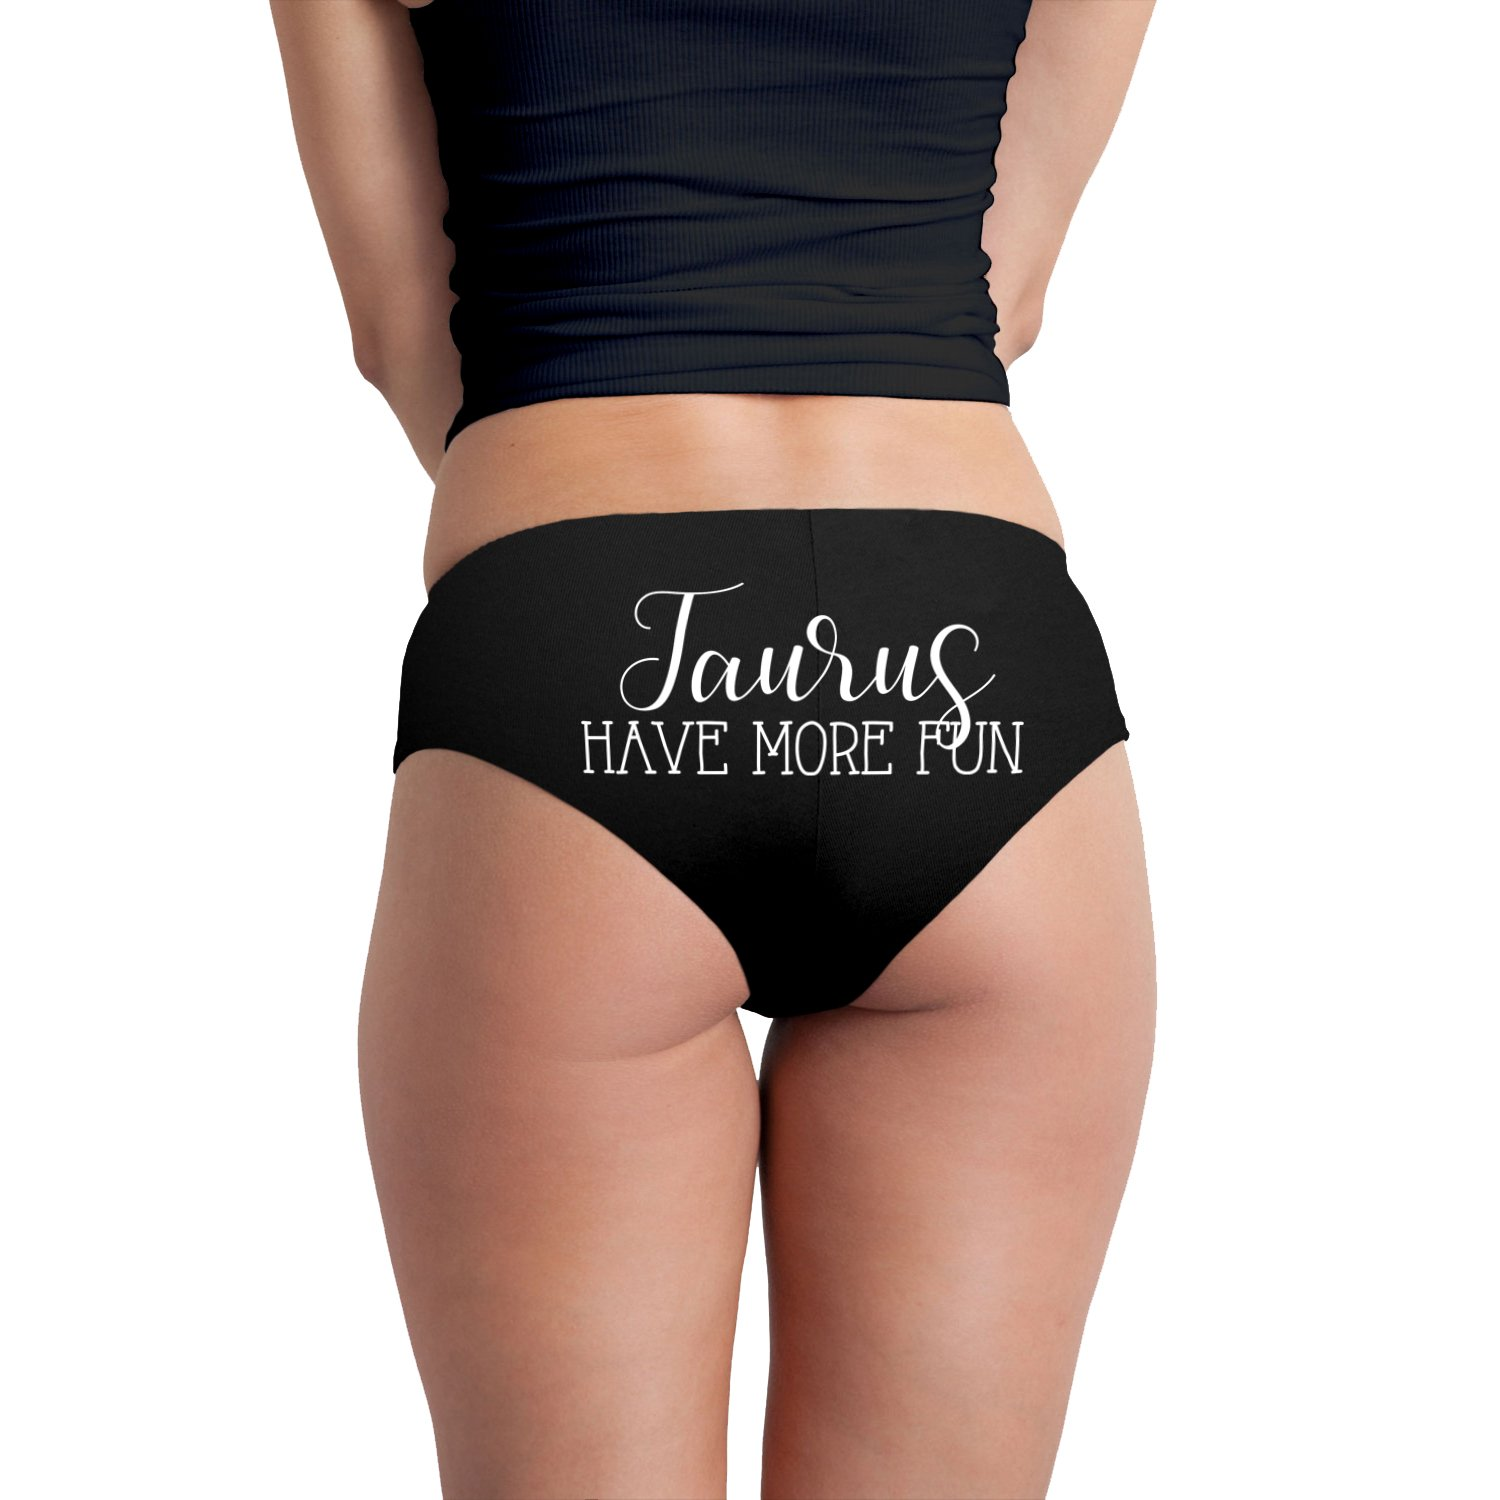 Taurus Have More Fun Astrology Zodiac Sign Funny Womens Boyshort Underwear Panties